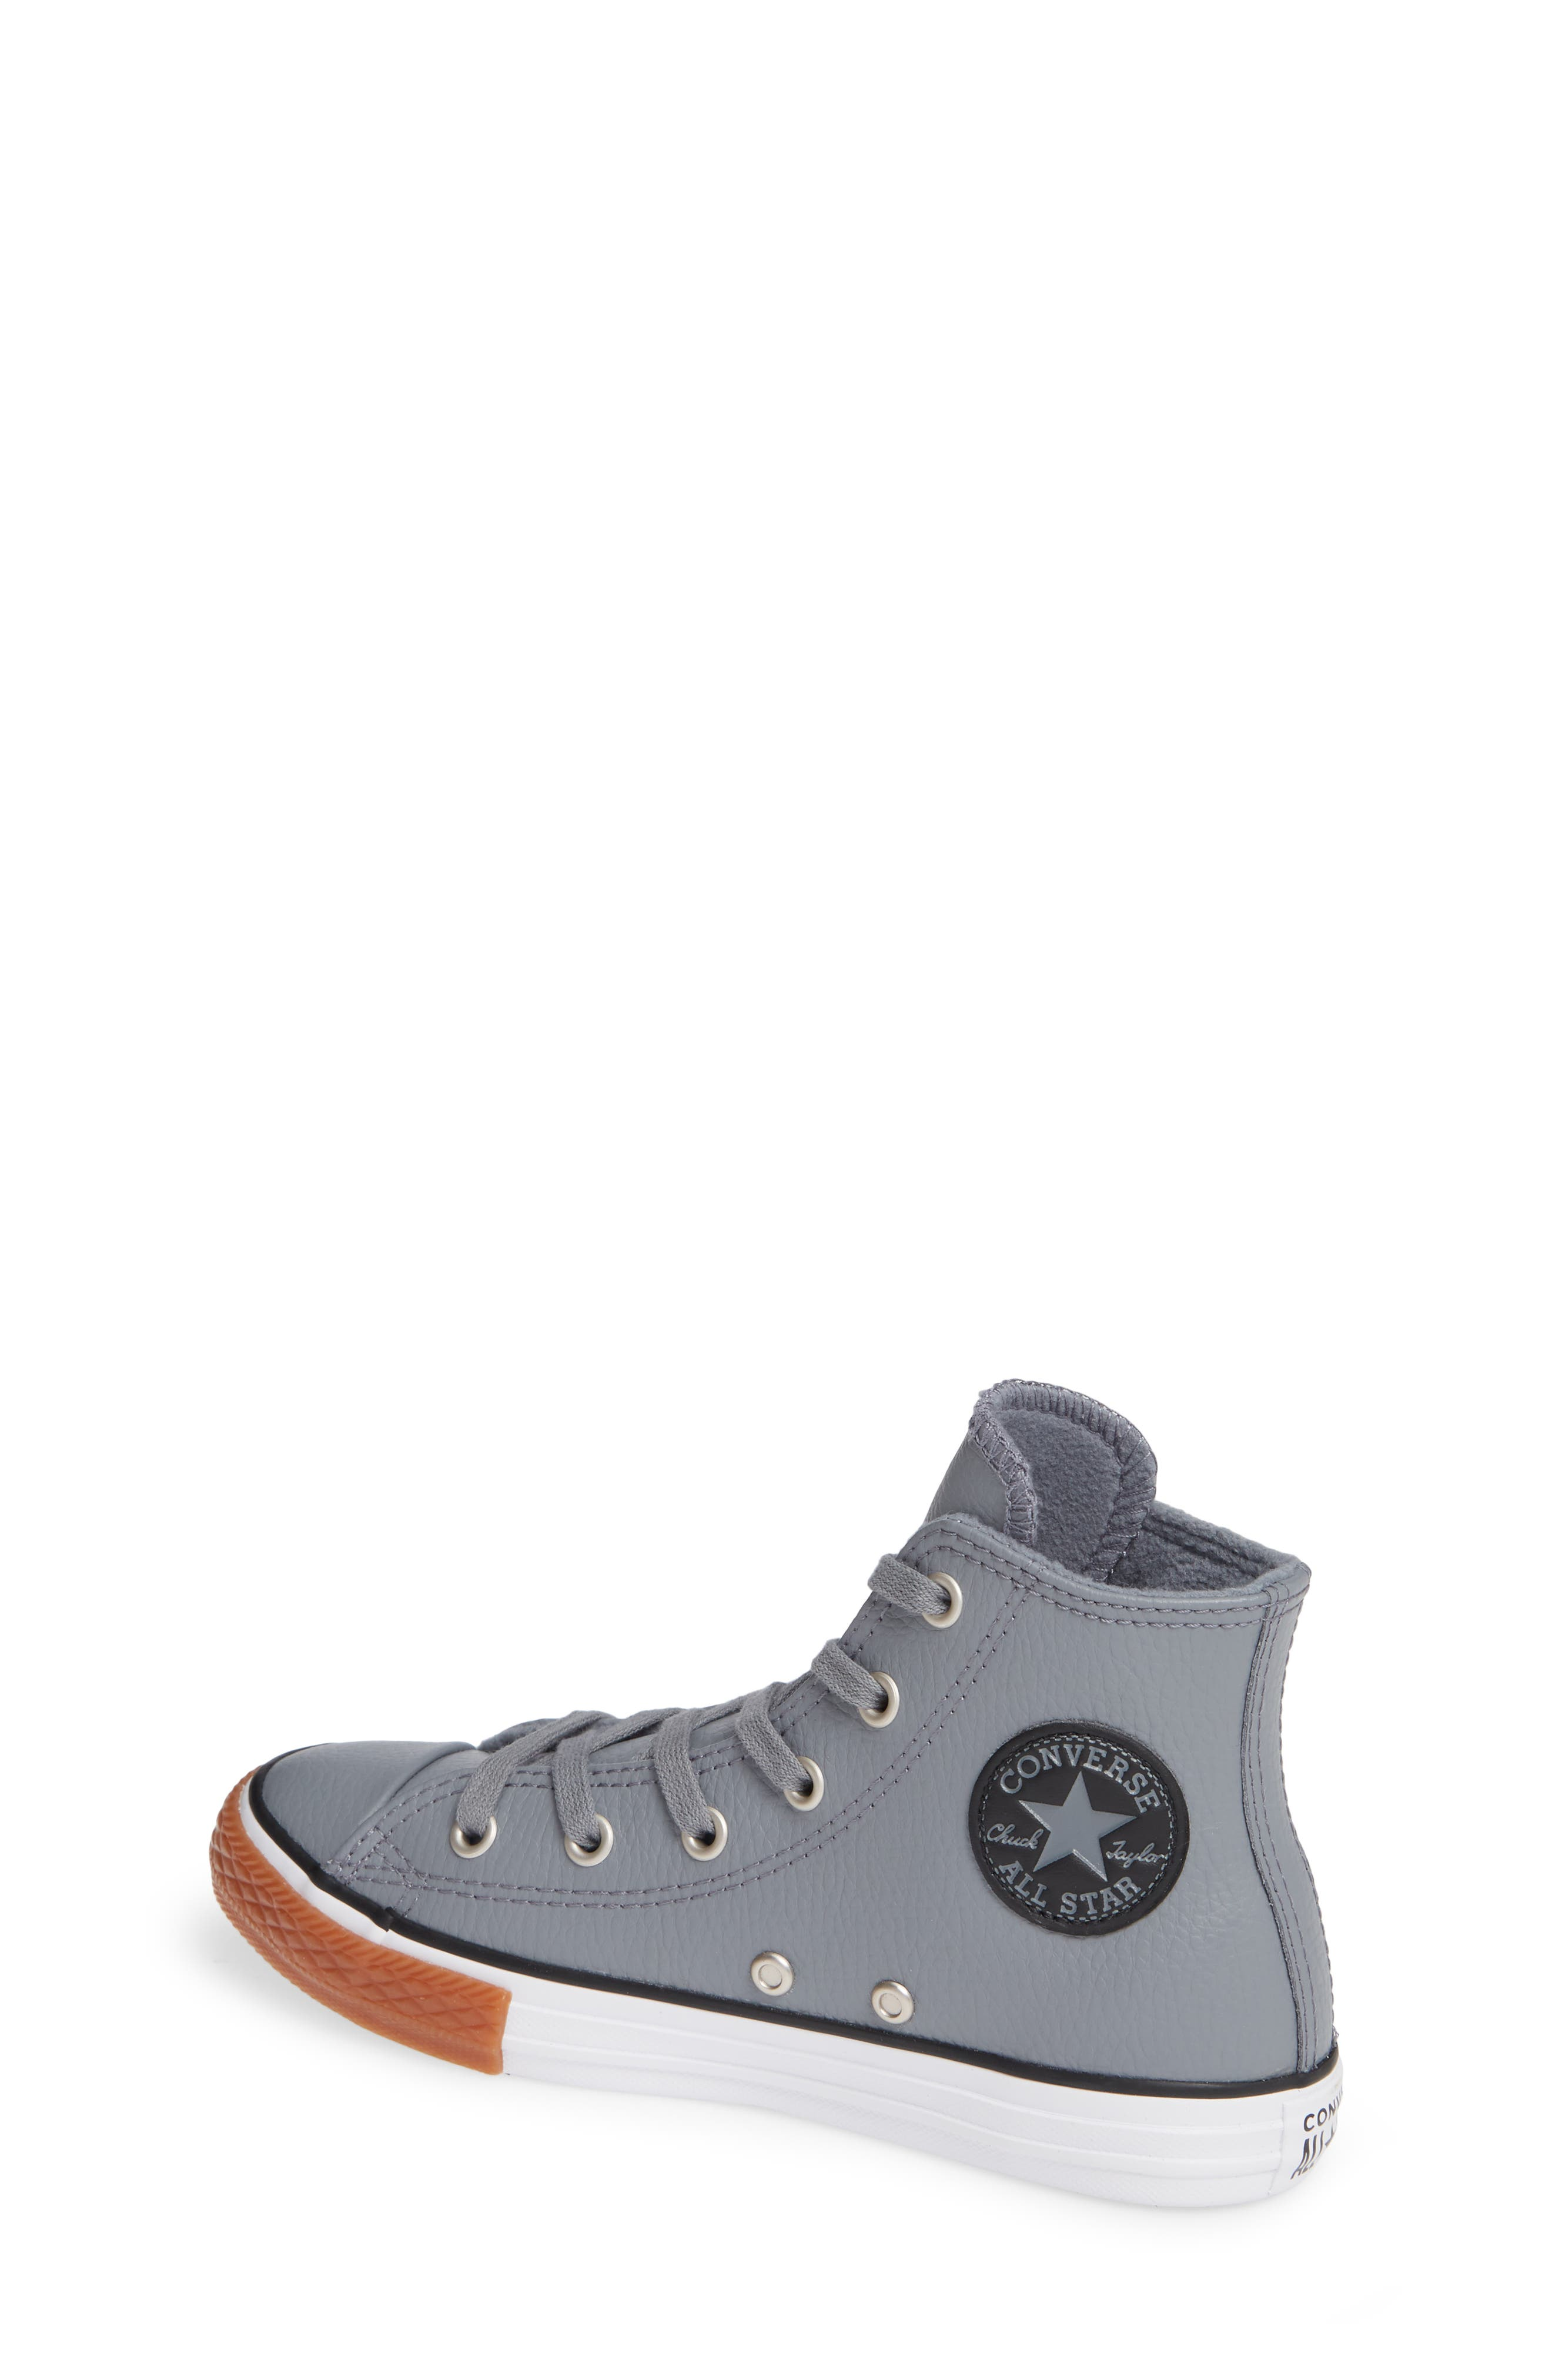 Chuck Taylor<sup>®</sup> All Star<sup>®</sup> No Gum In Class Leather High Top Sneaker,                             Alternate thumbnail 2, color,                             039